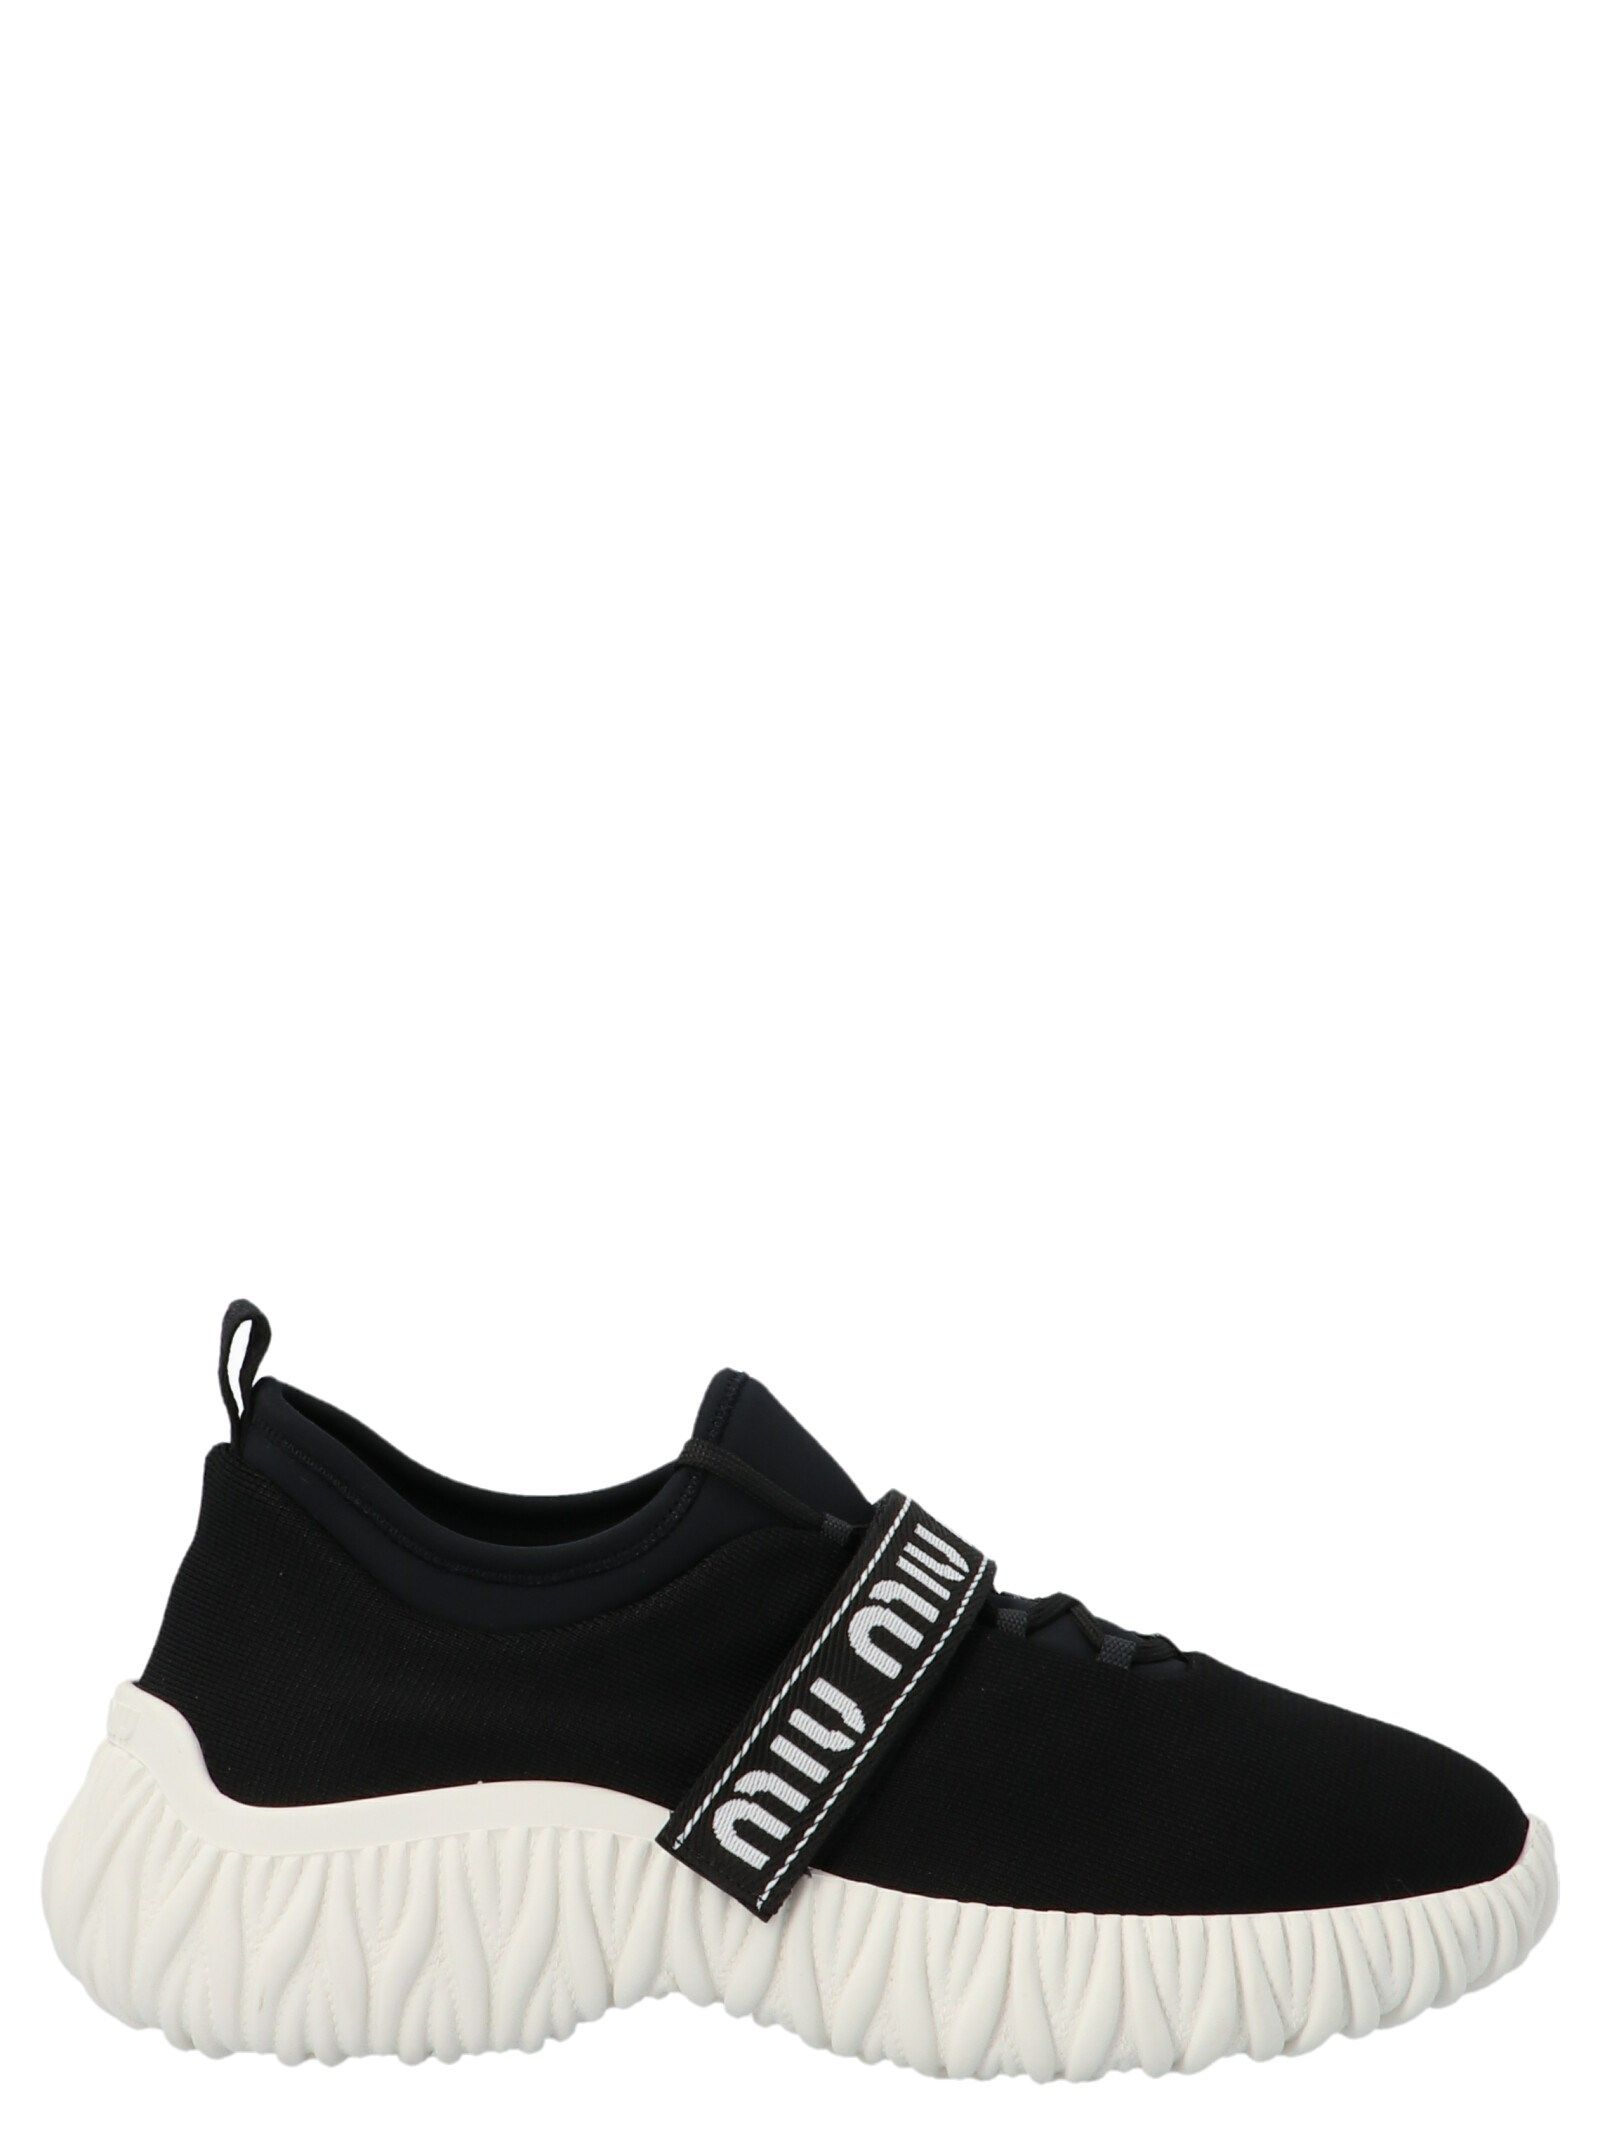 Miu Miu MIU MIU WOMEN'S WHITE OTHER MATERIALS SNEAKERS